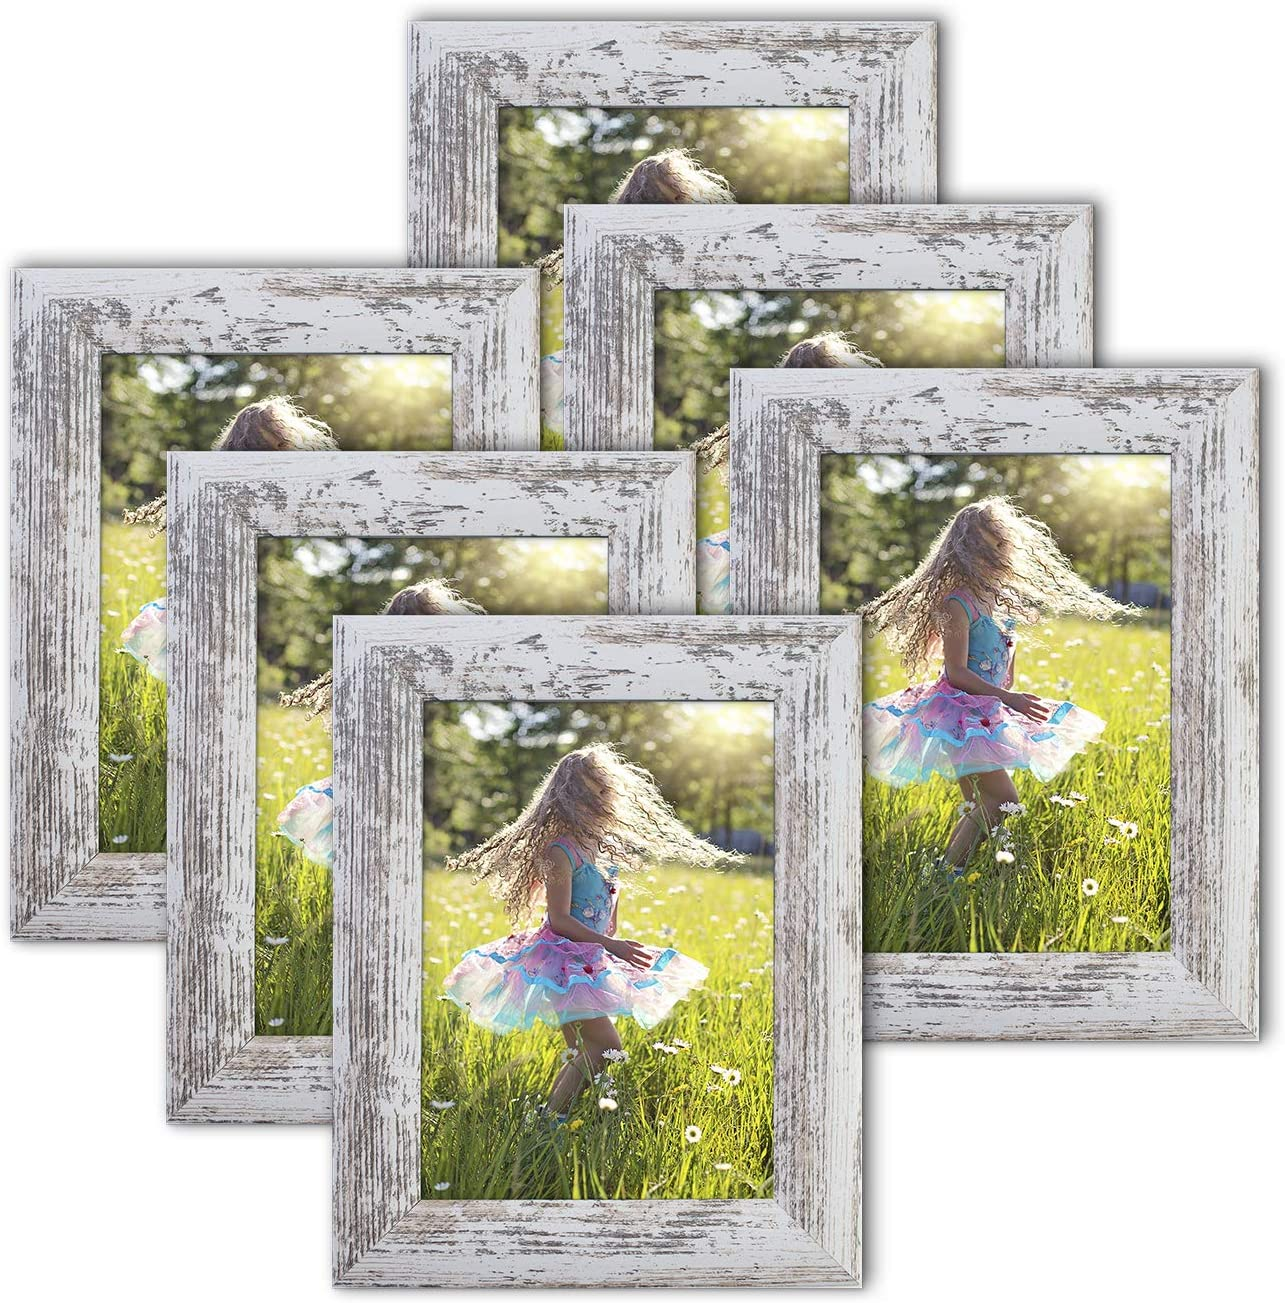 5x7 Picture Frames Wood Pattern Distressed White Photo Frames Packs 6 with High Definition Real Glass for Tabletop or Wall Decor